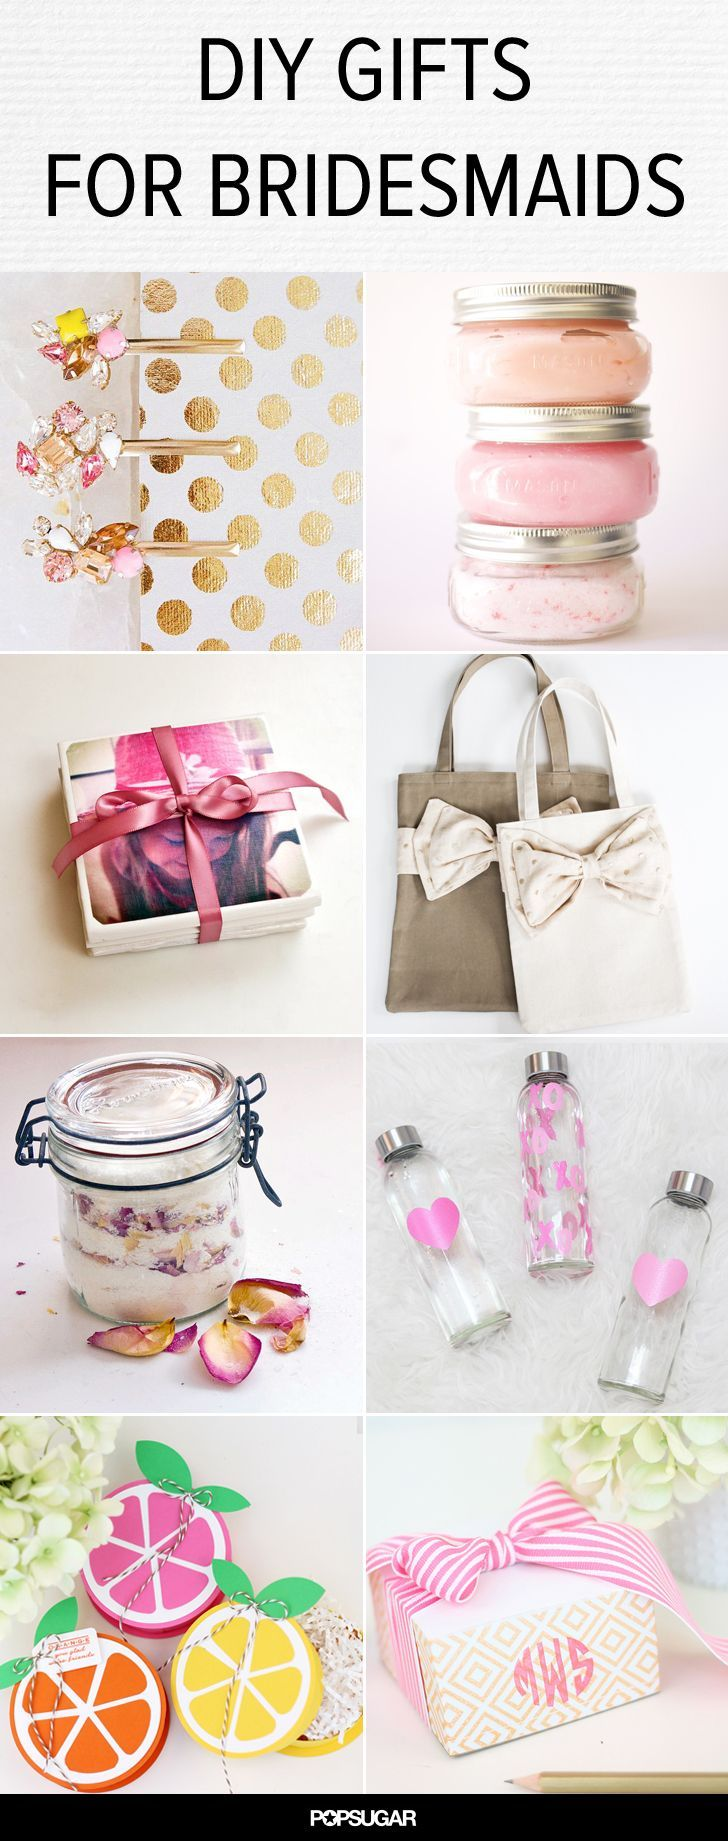 48 Beautiful DIY Bridesmaid Gifts That Are Chic and Cheap